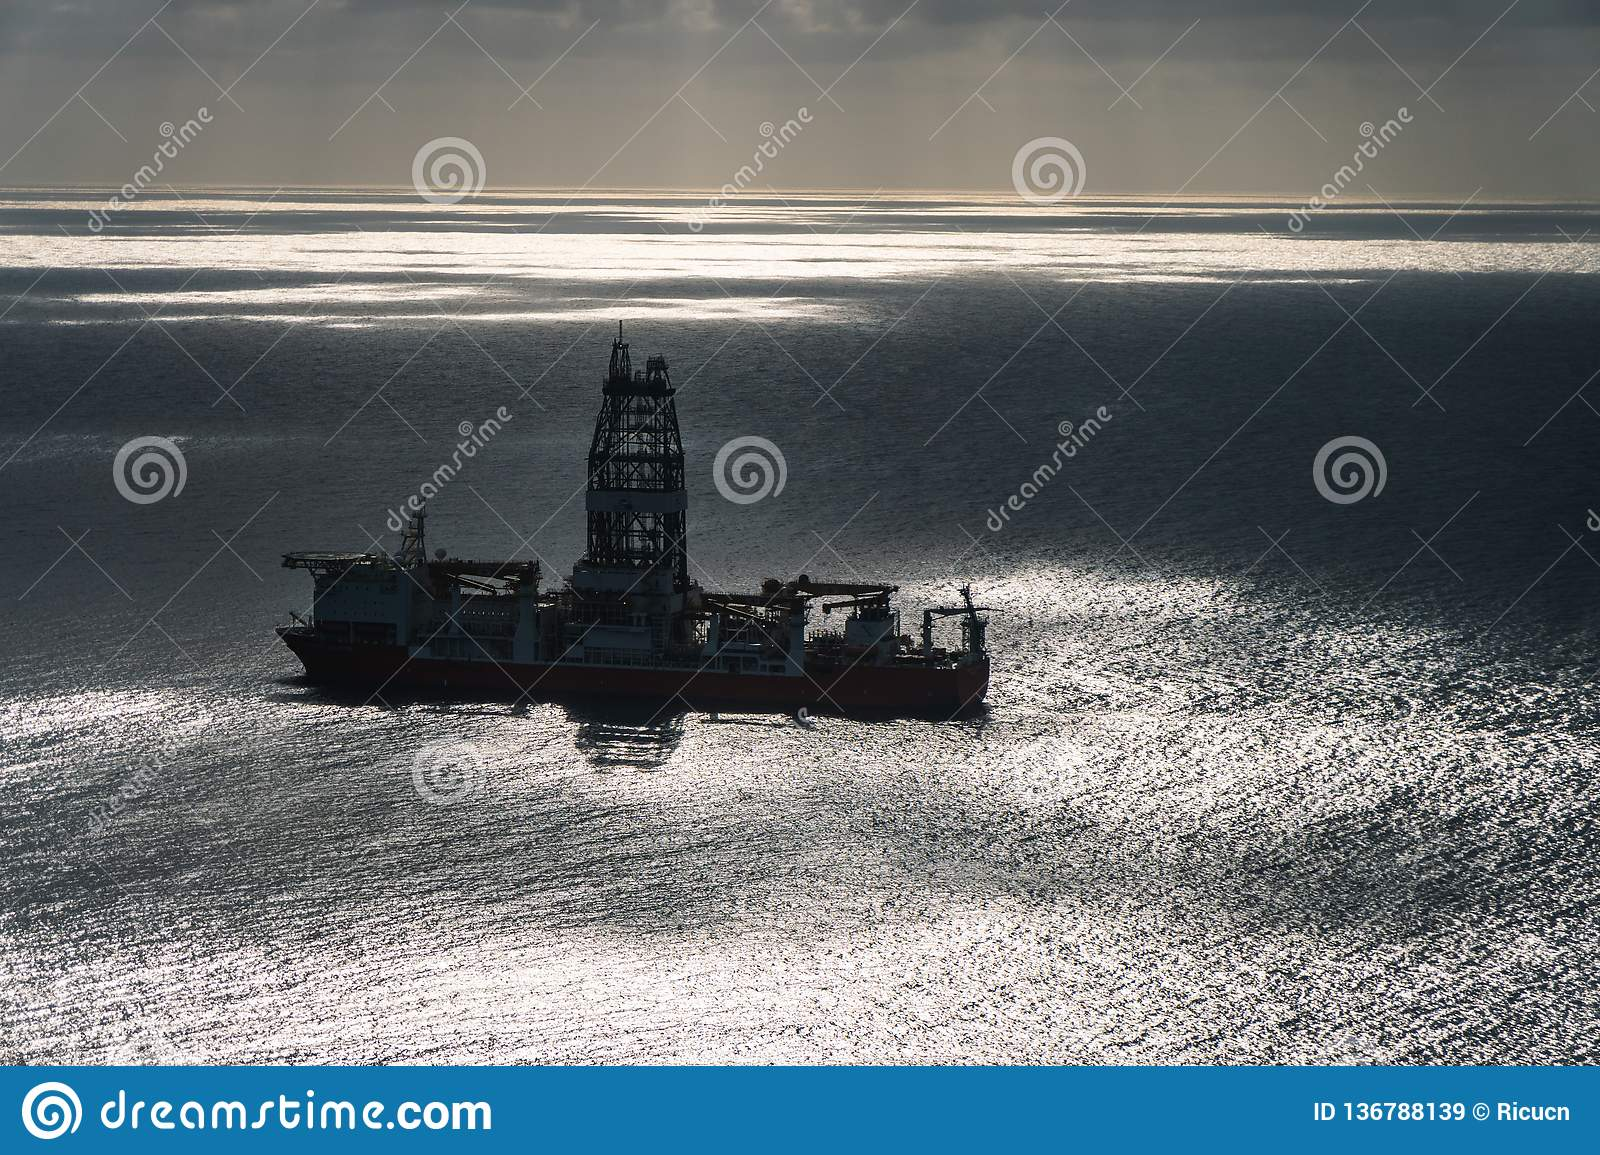 Oil platform in the middle of ocean aereal view